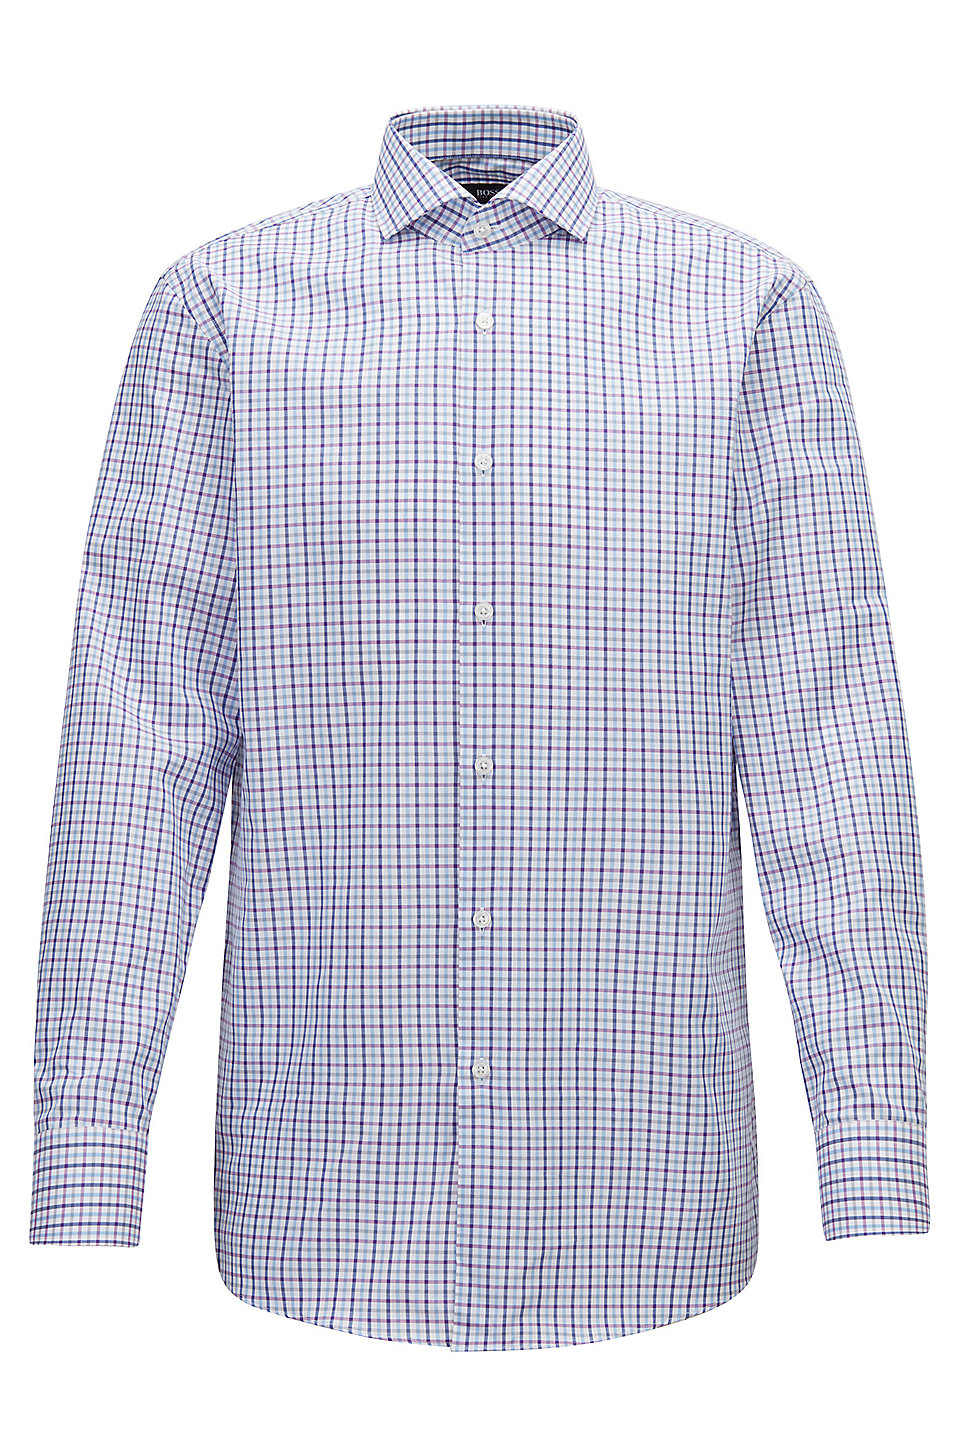 Boss Slim Fit Shirt In Oxford Cotton With Gingham Check